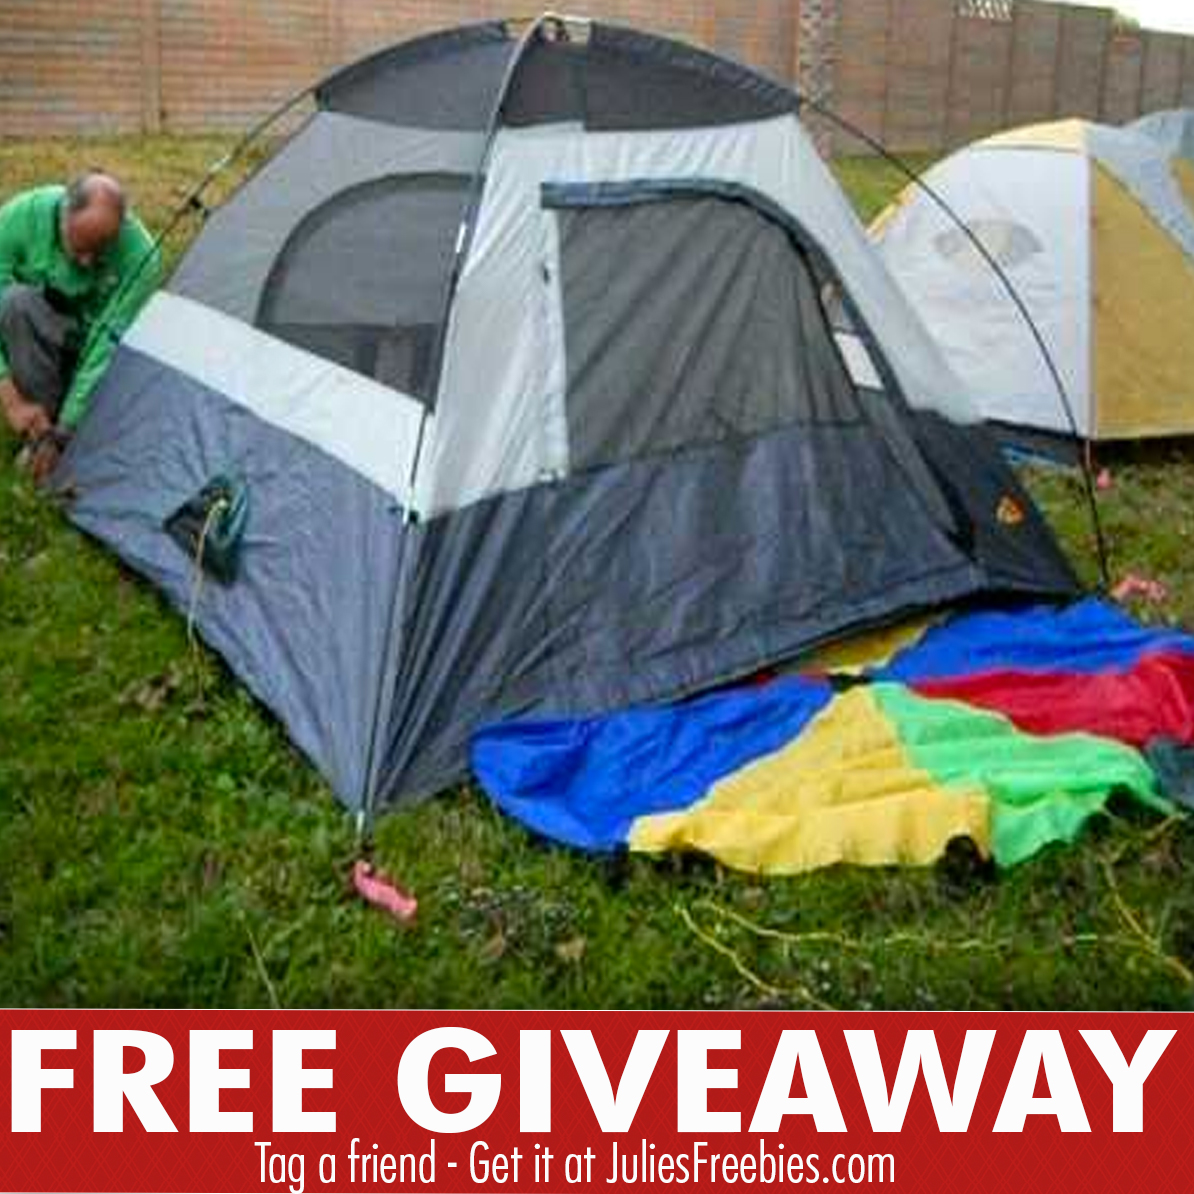 Camping giveaway 2018